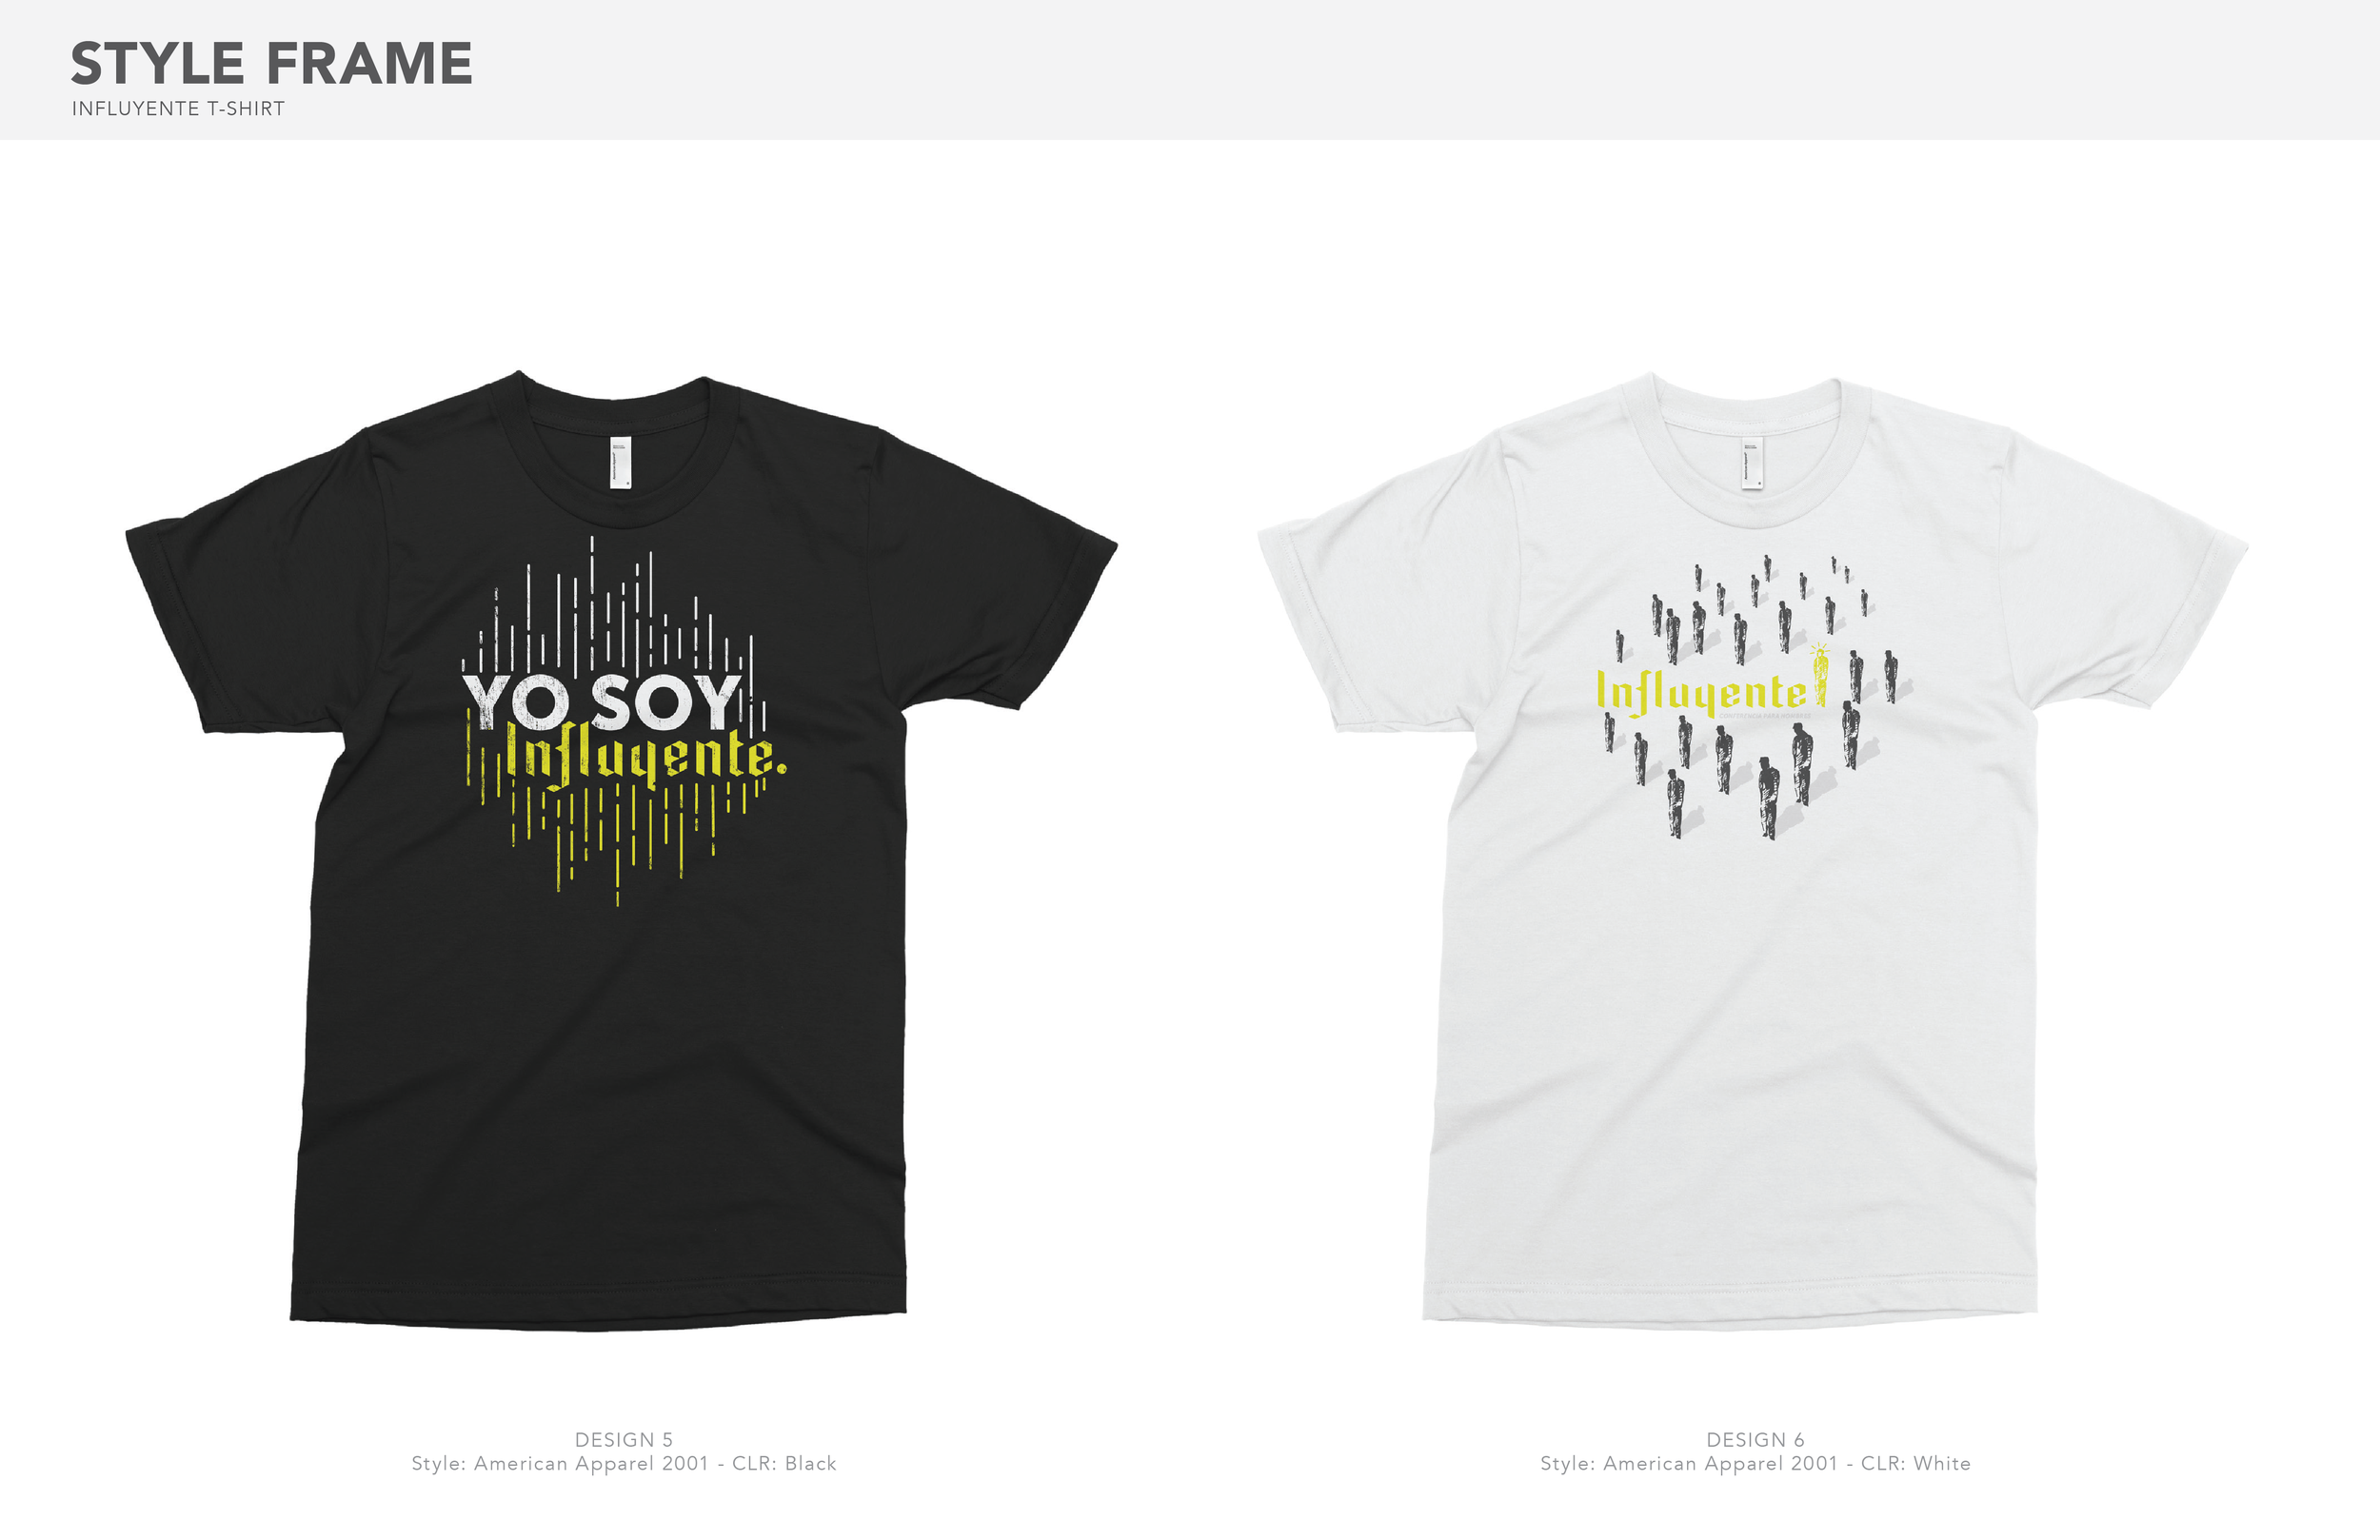 Influyente-Tshirt-StyleFrames_3.png